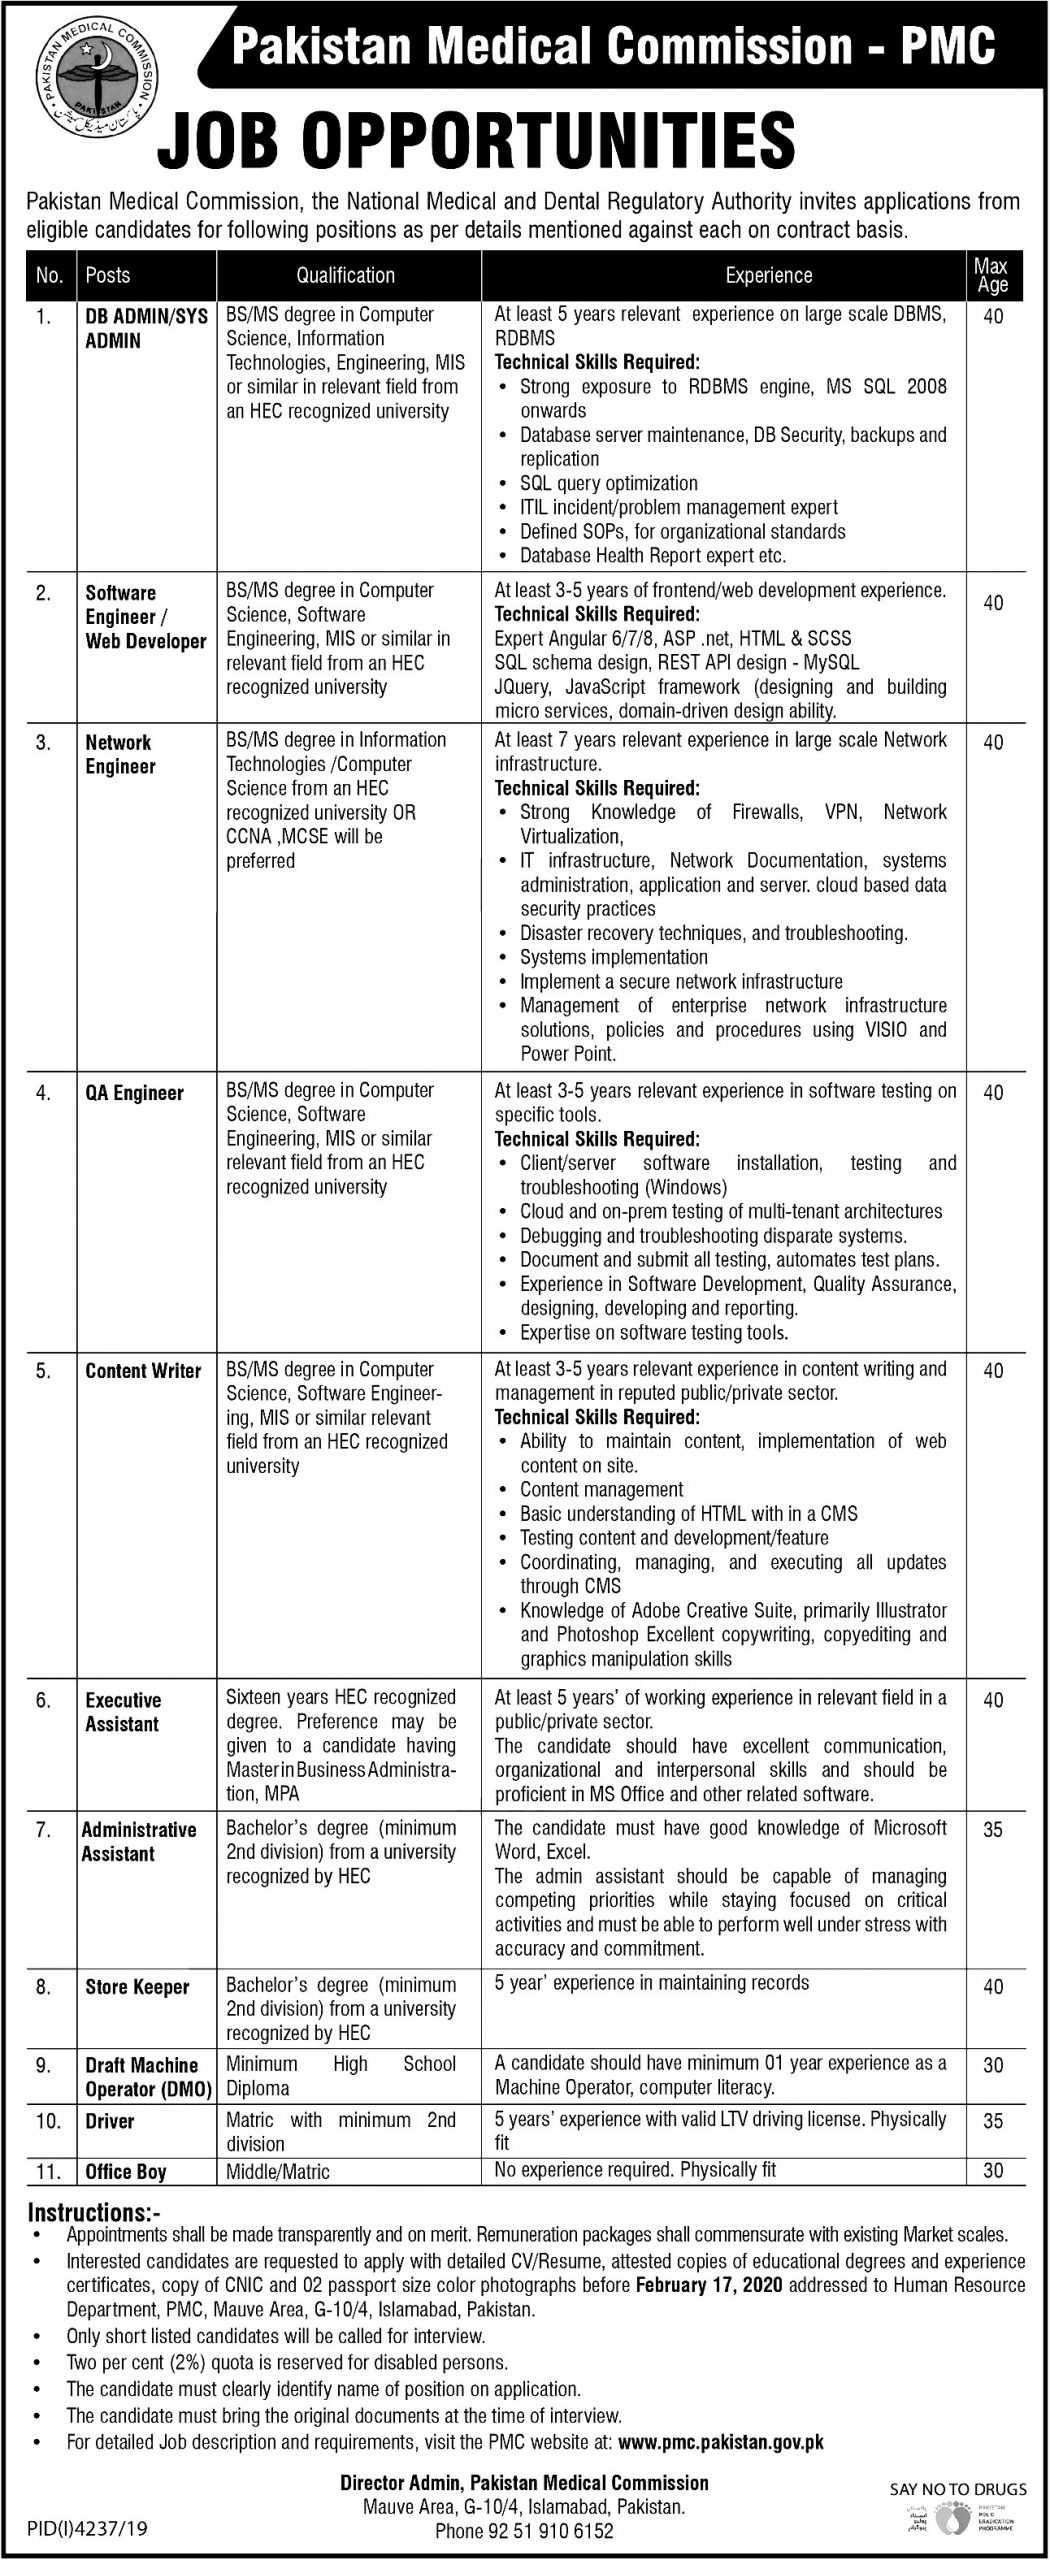 Pakistan Medical Commission PMC Jobs 2021 Application Form Eligibility Criteria